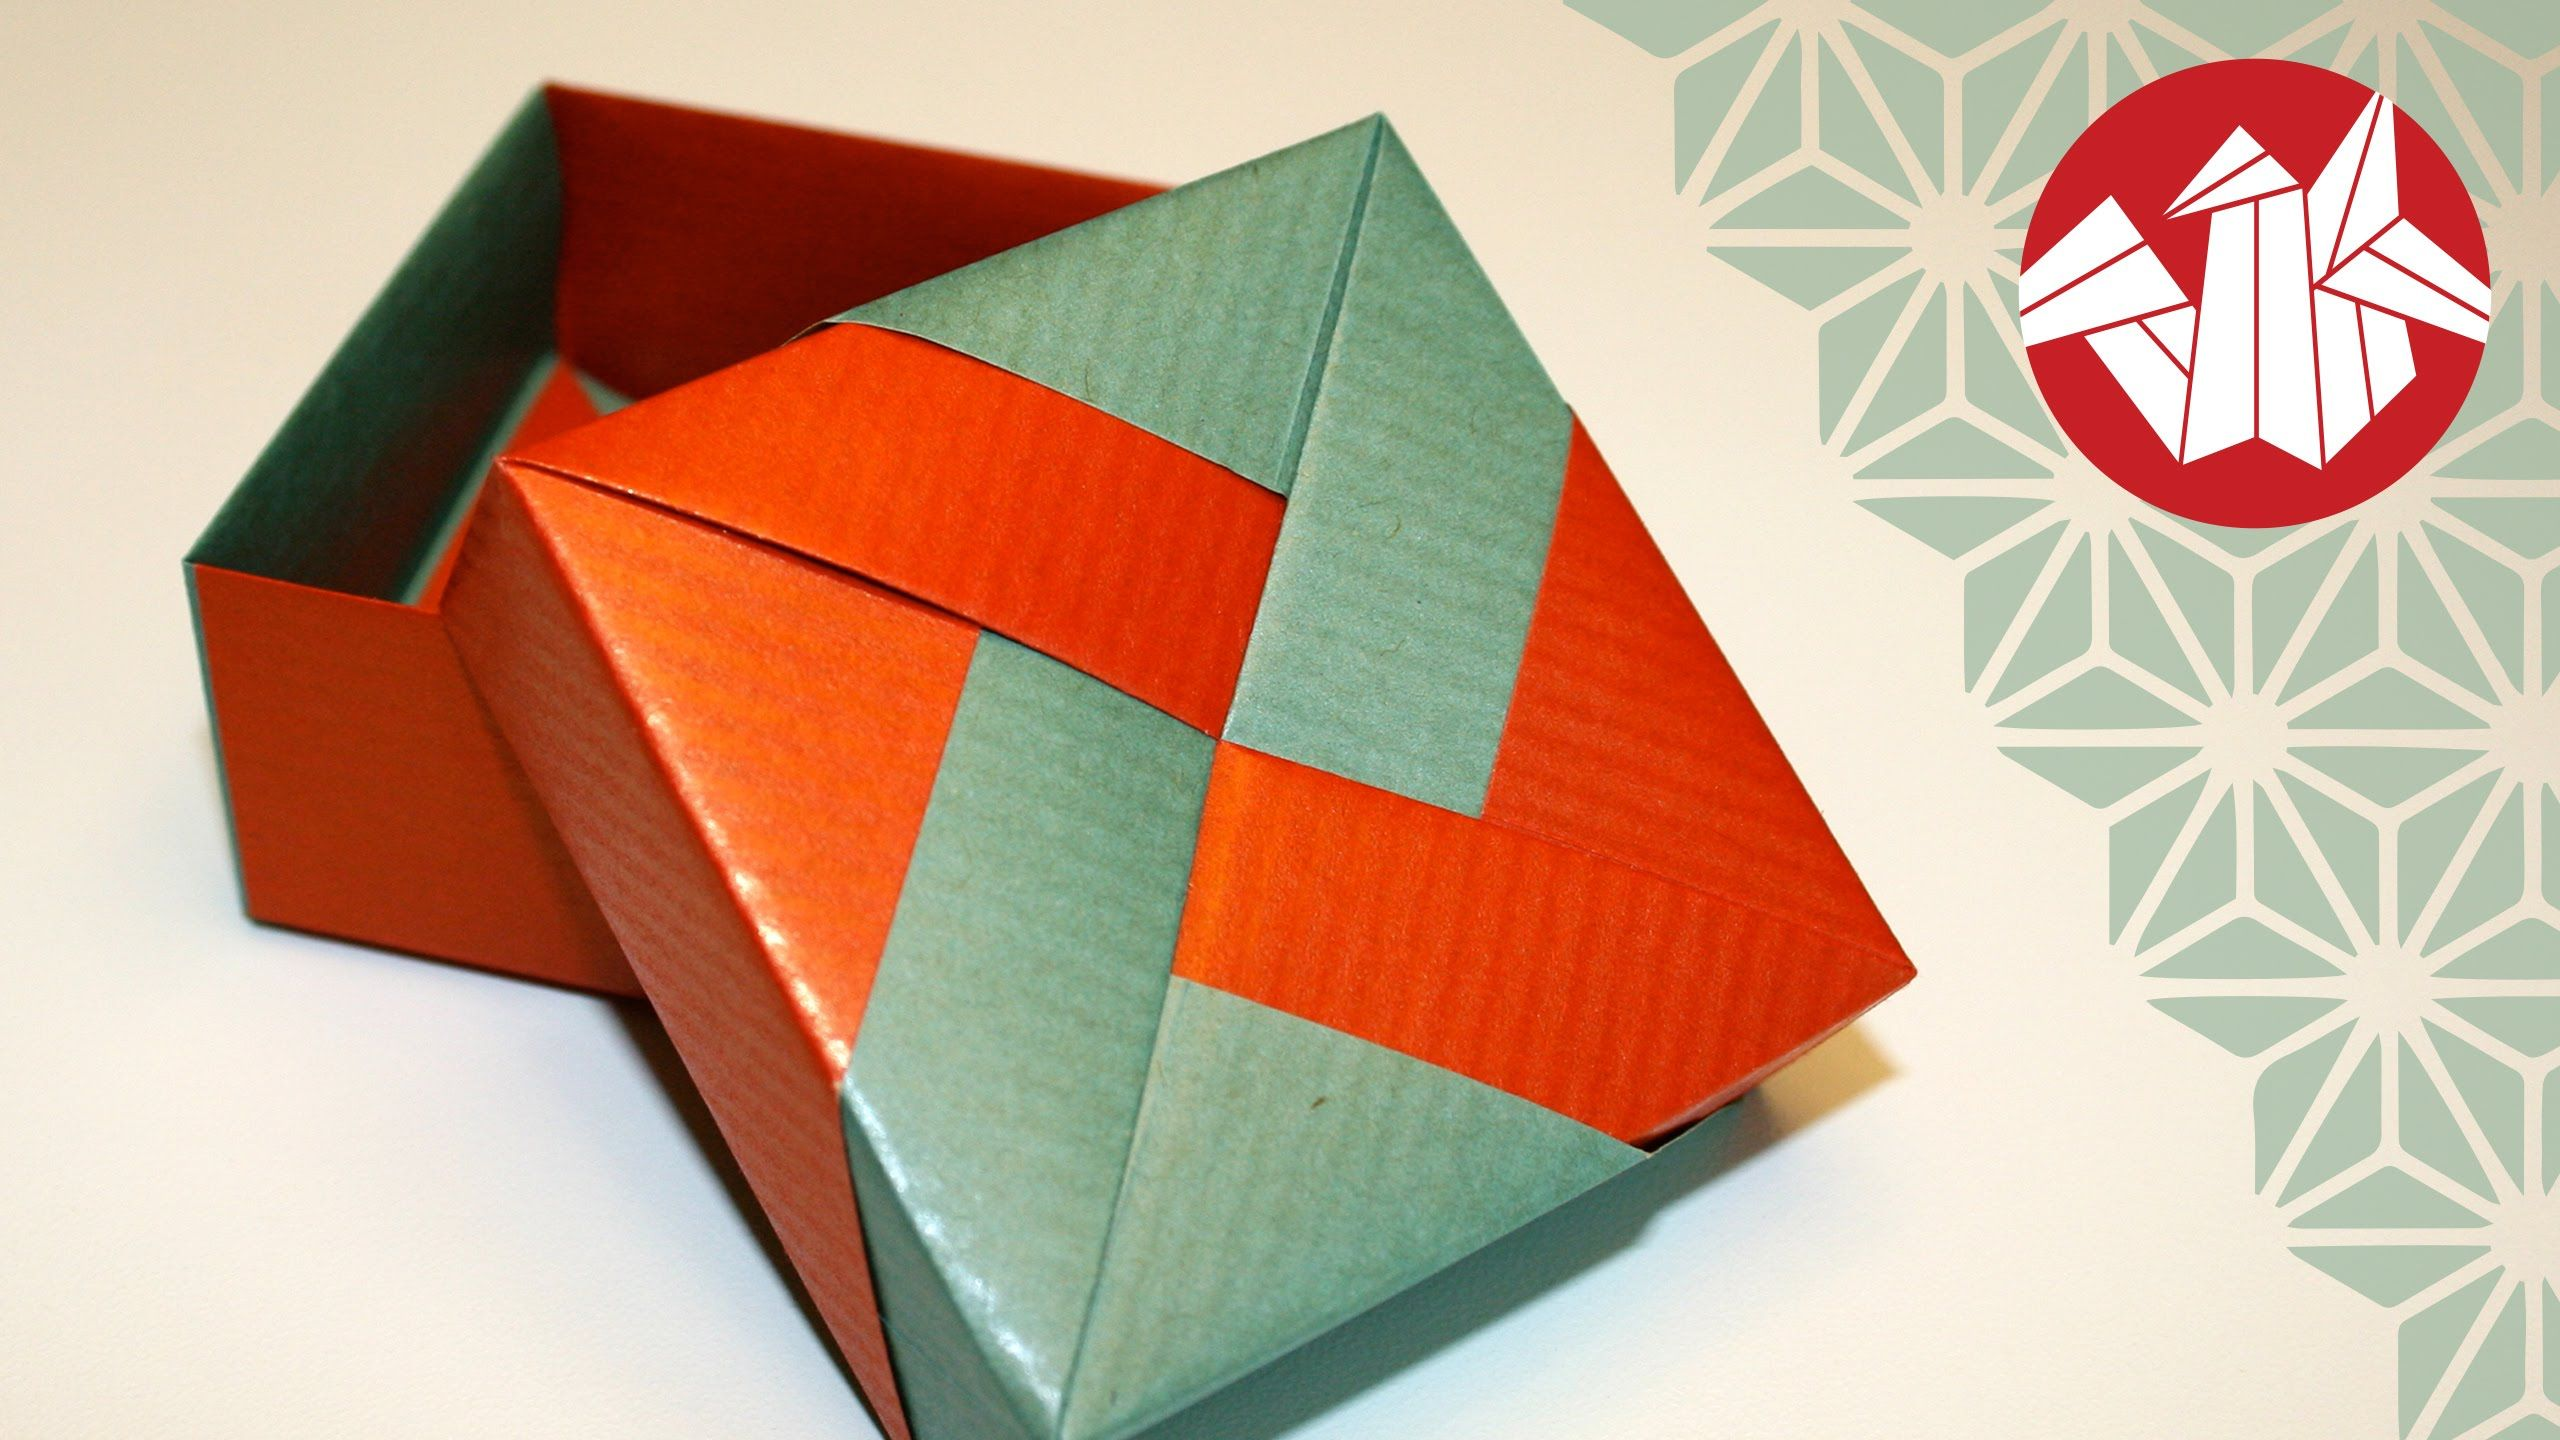 Tomoko Fuse Box features one of the best origami box lids I've done so far.